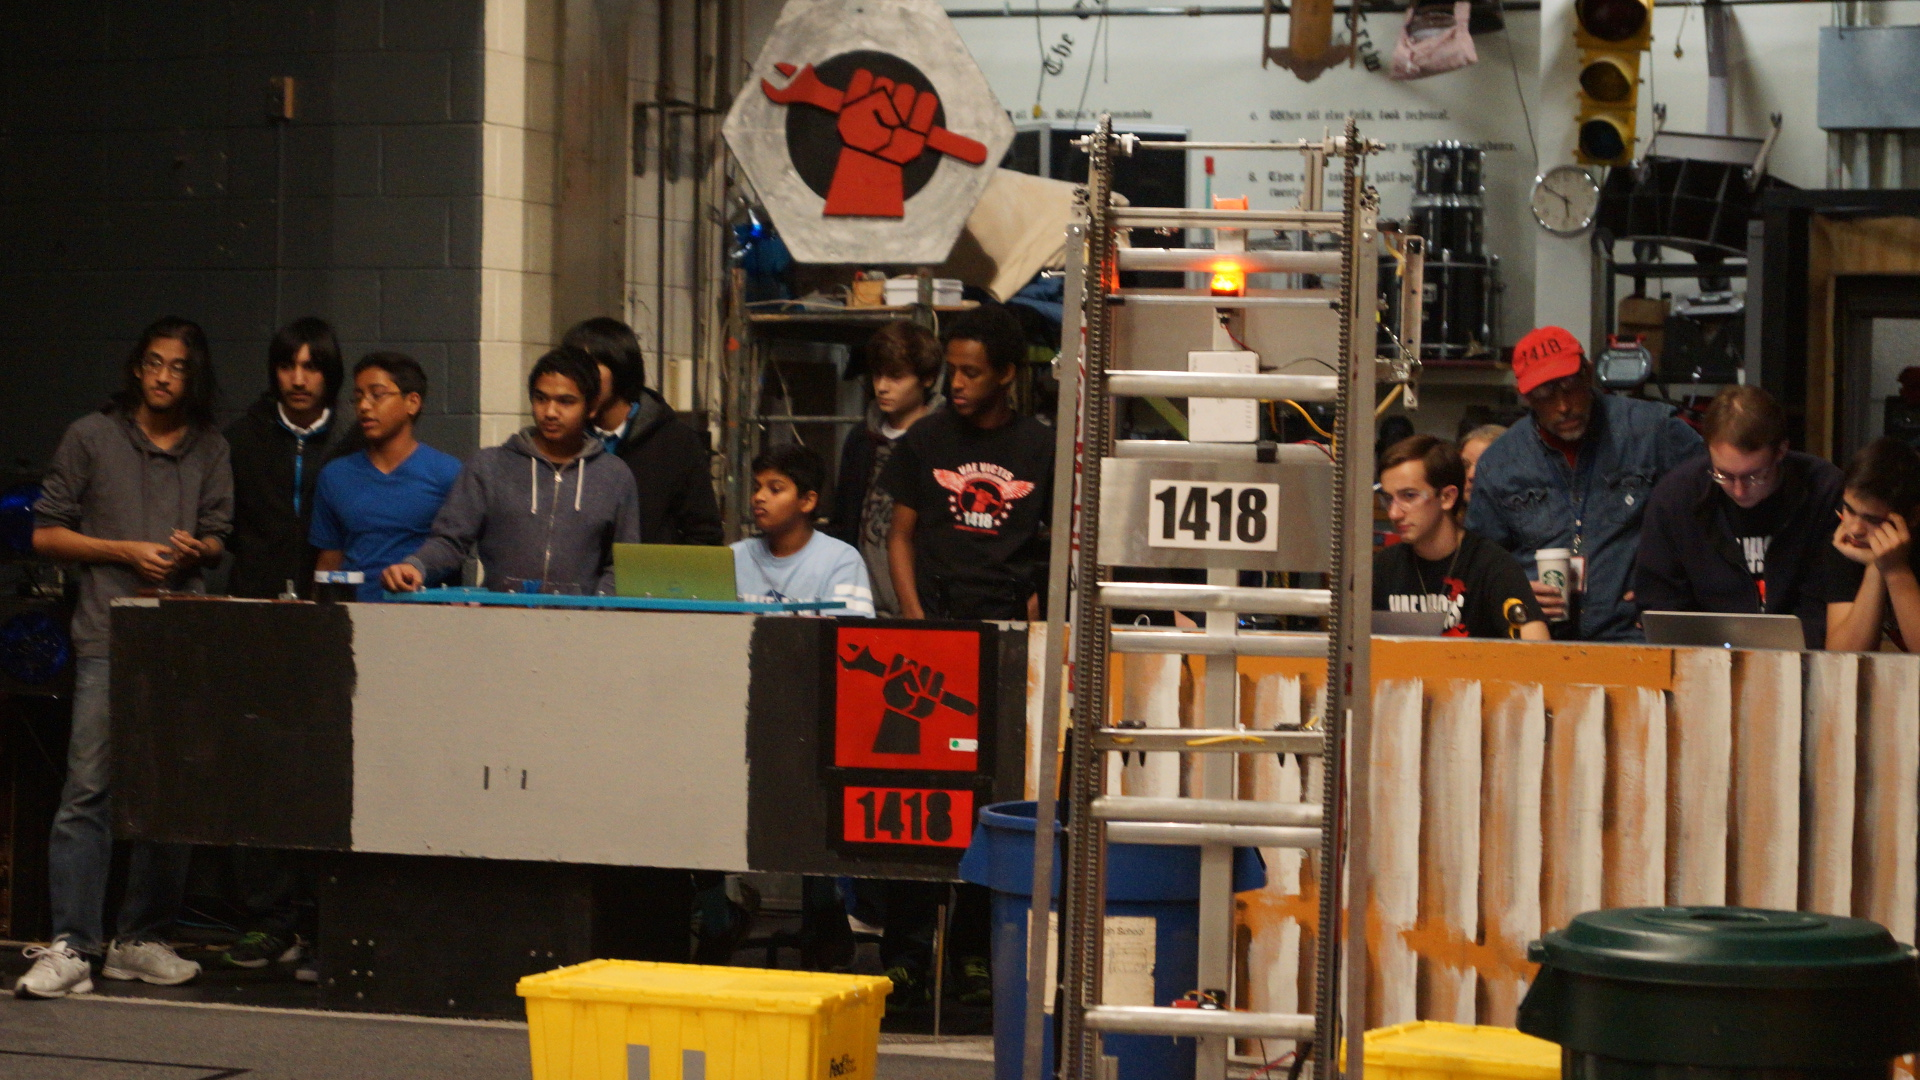 A back-stage robot scrimmage.